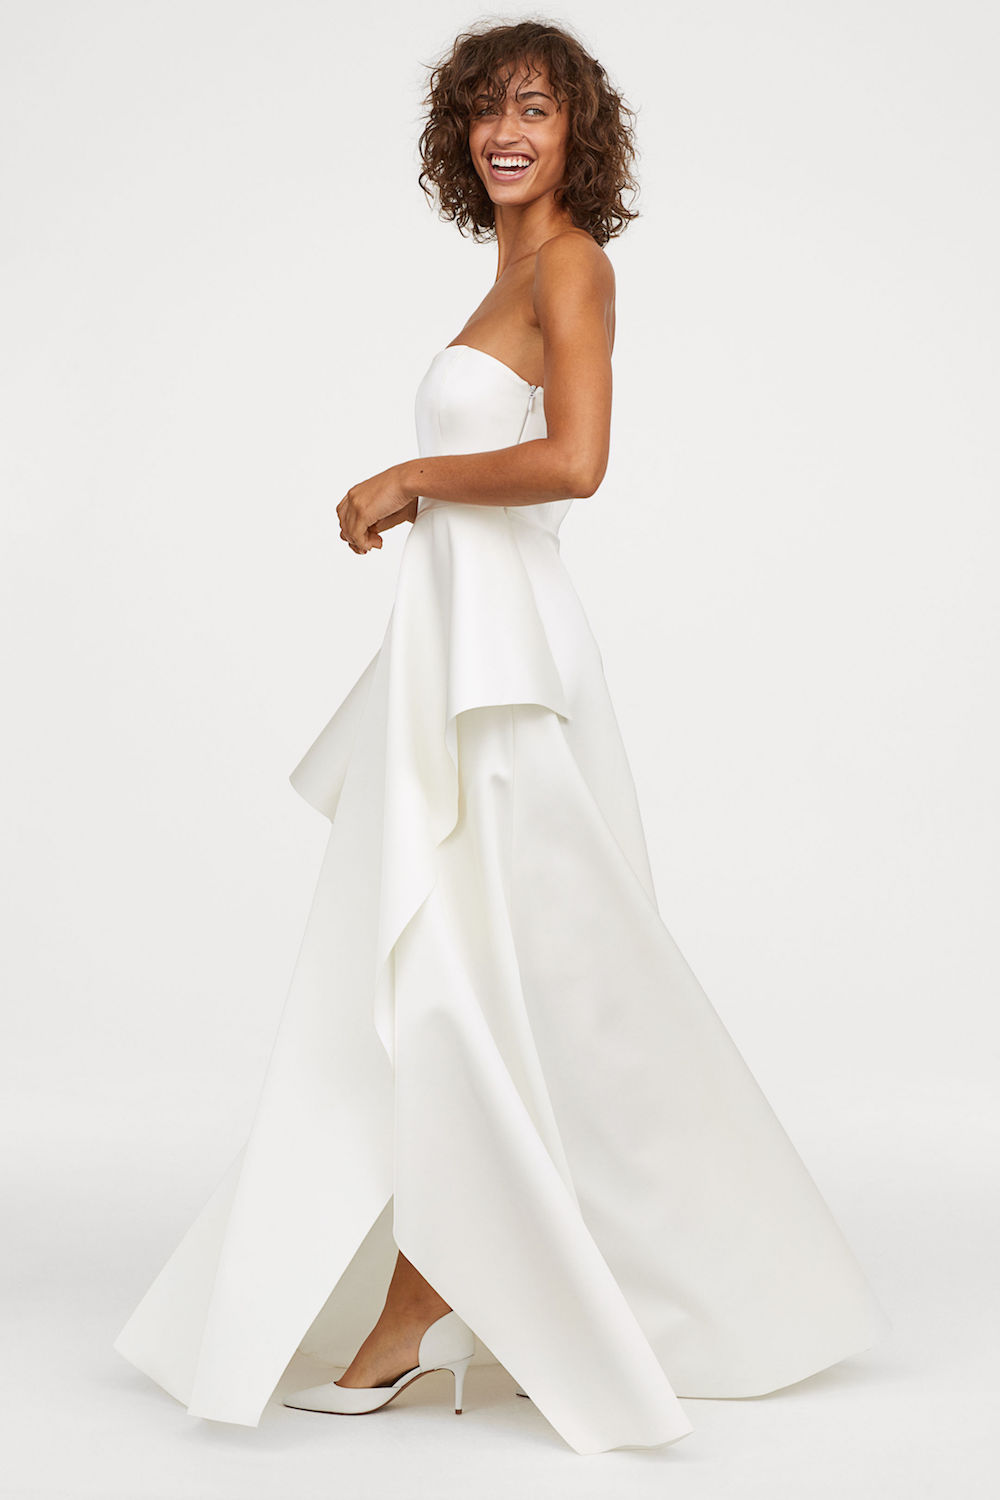 811e2433 The New H&M Wedding Dress Collection Is Absolutely Dreamy